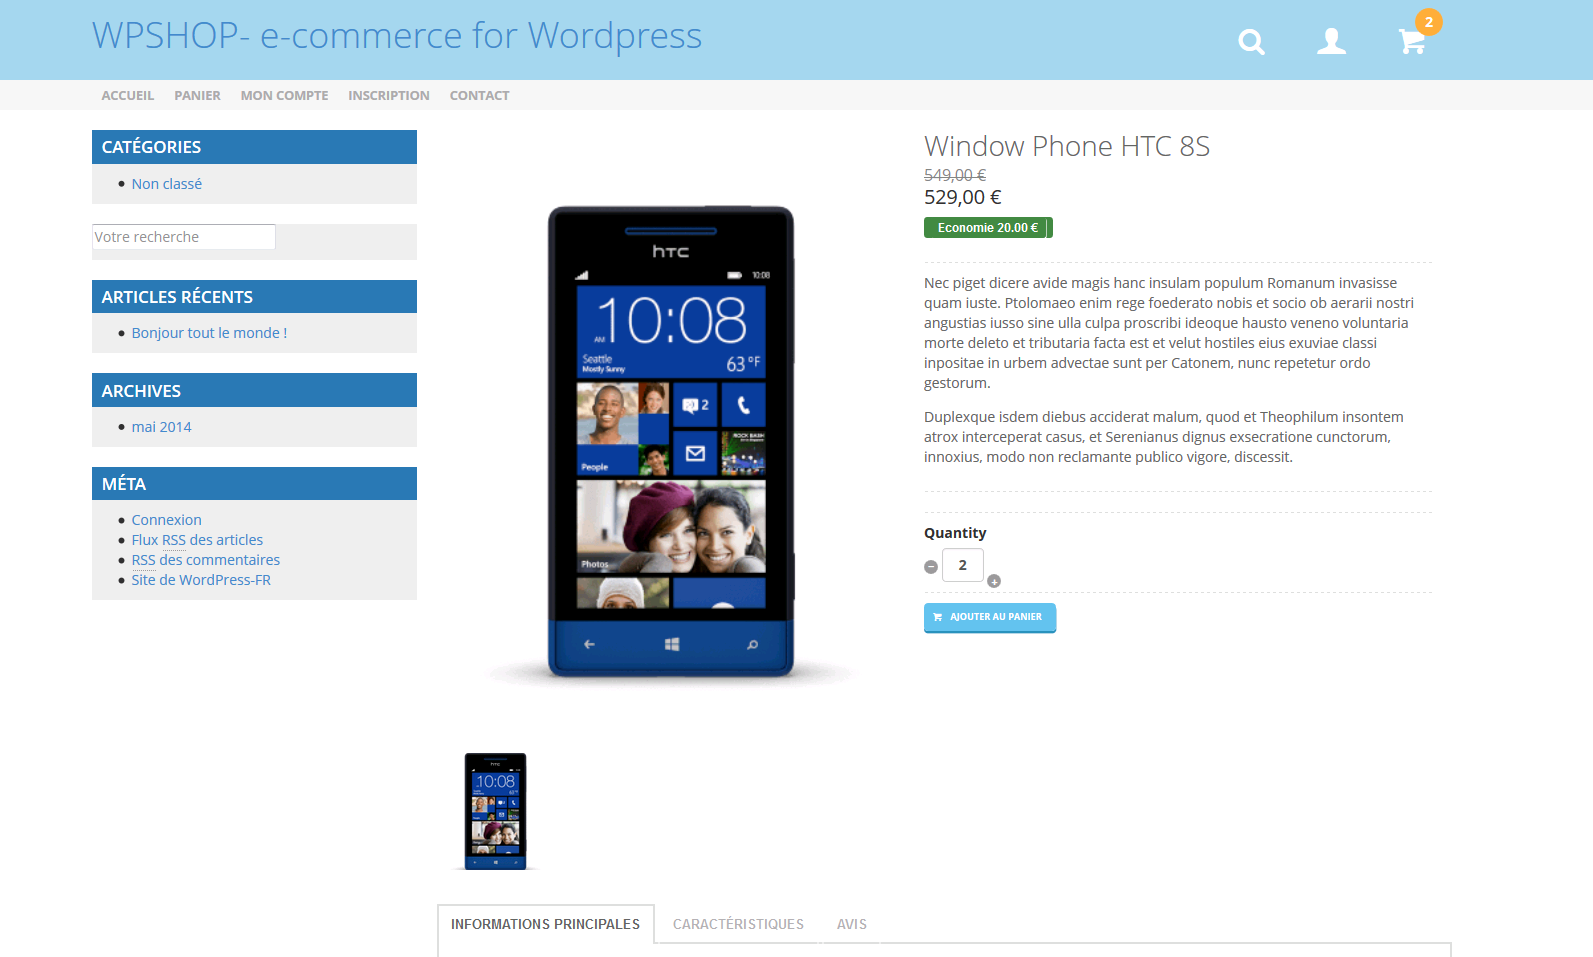 wpshop screenshot 1